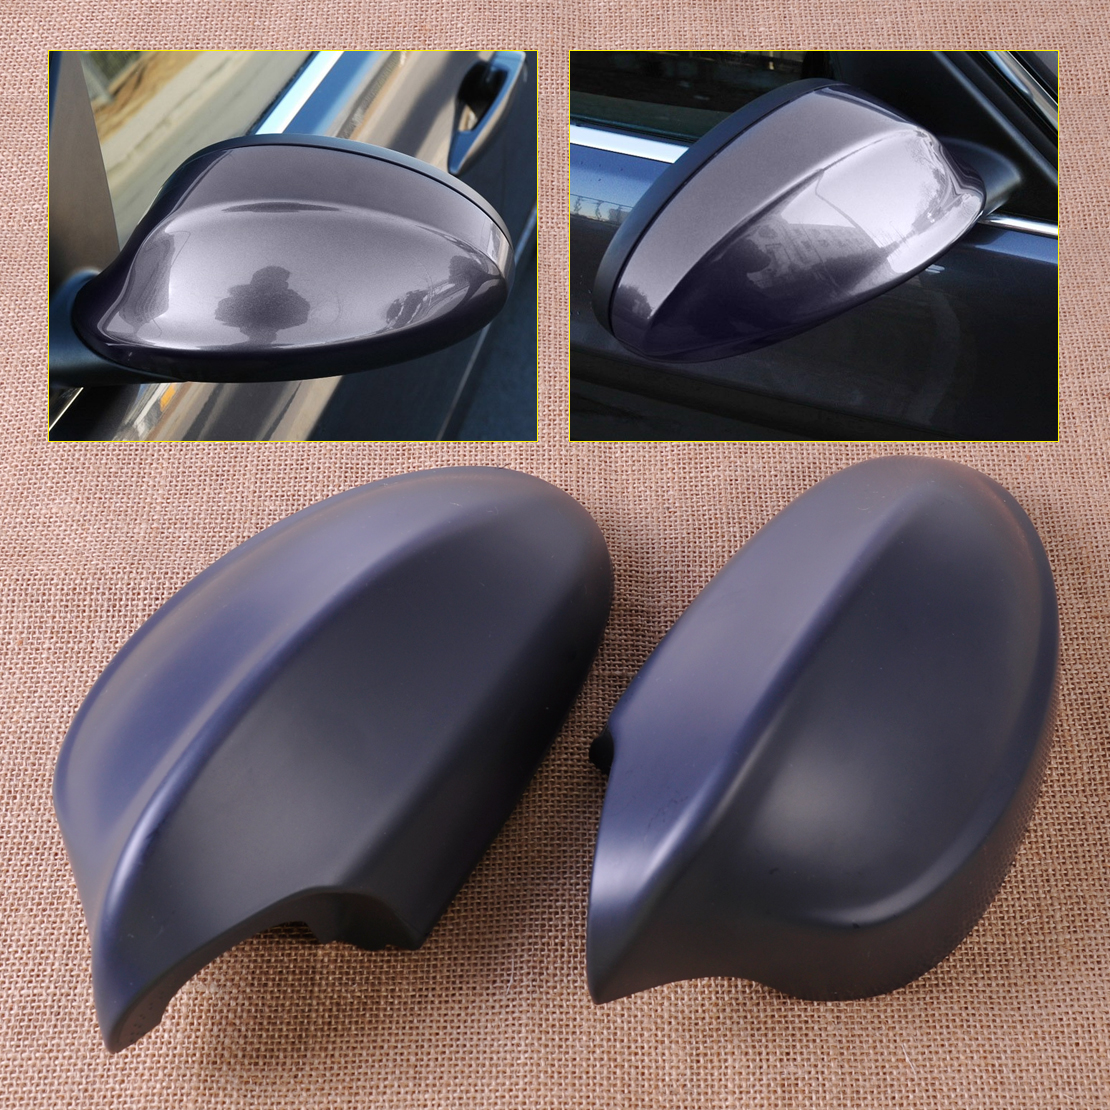 CITALL 2x Door Mirror Cap Cover Case 51167135097 51167135098 for BMW E90 E91 3 Series 325i 328i 330i 330xi 335i 328i 328xi 335i 2pcs angel eyes car auto white led light for bmw e90 e91 3 series 325i 328i 325xi 328xi 330i 06 08 excellent quality angel eyes